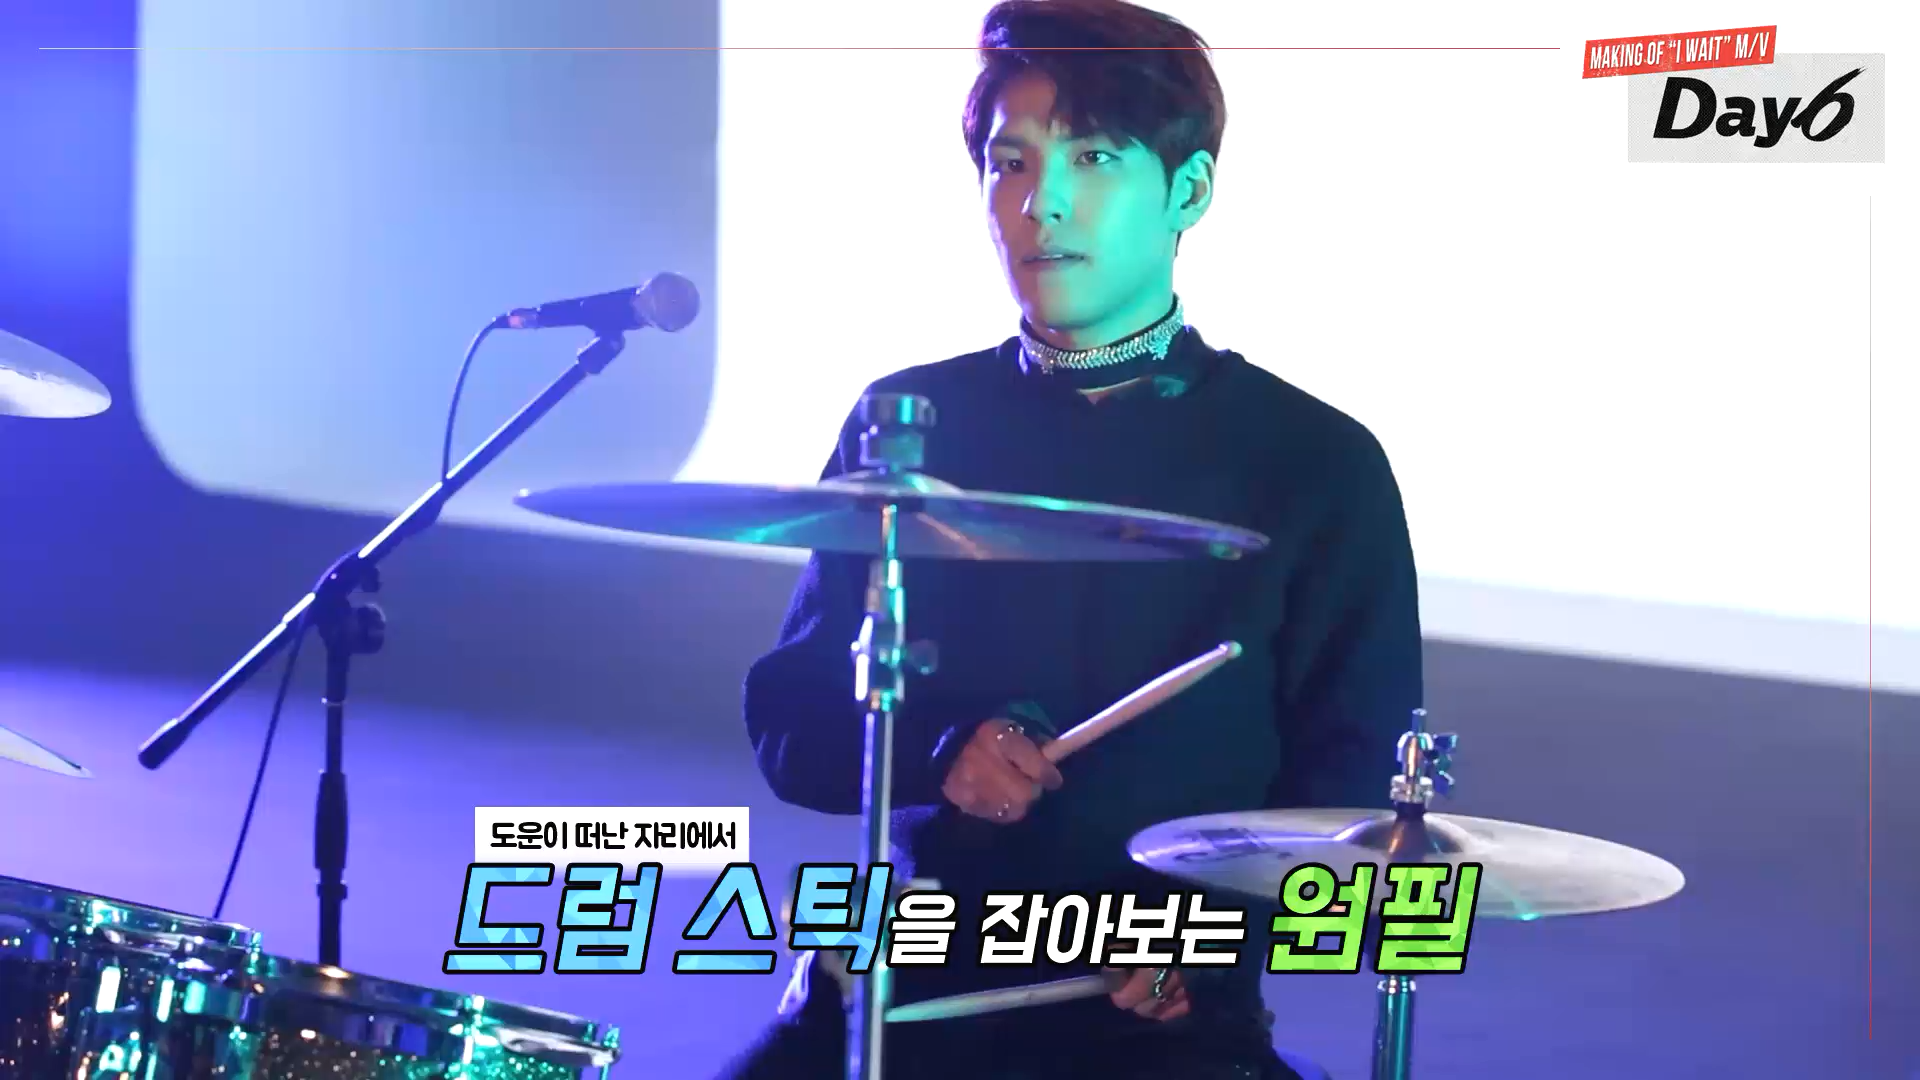 [포스트] [DAY6 MAGAZINE] Every DAY6 January